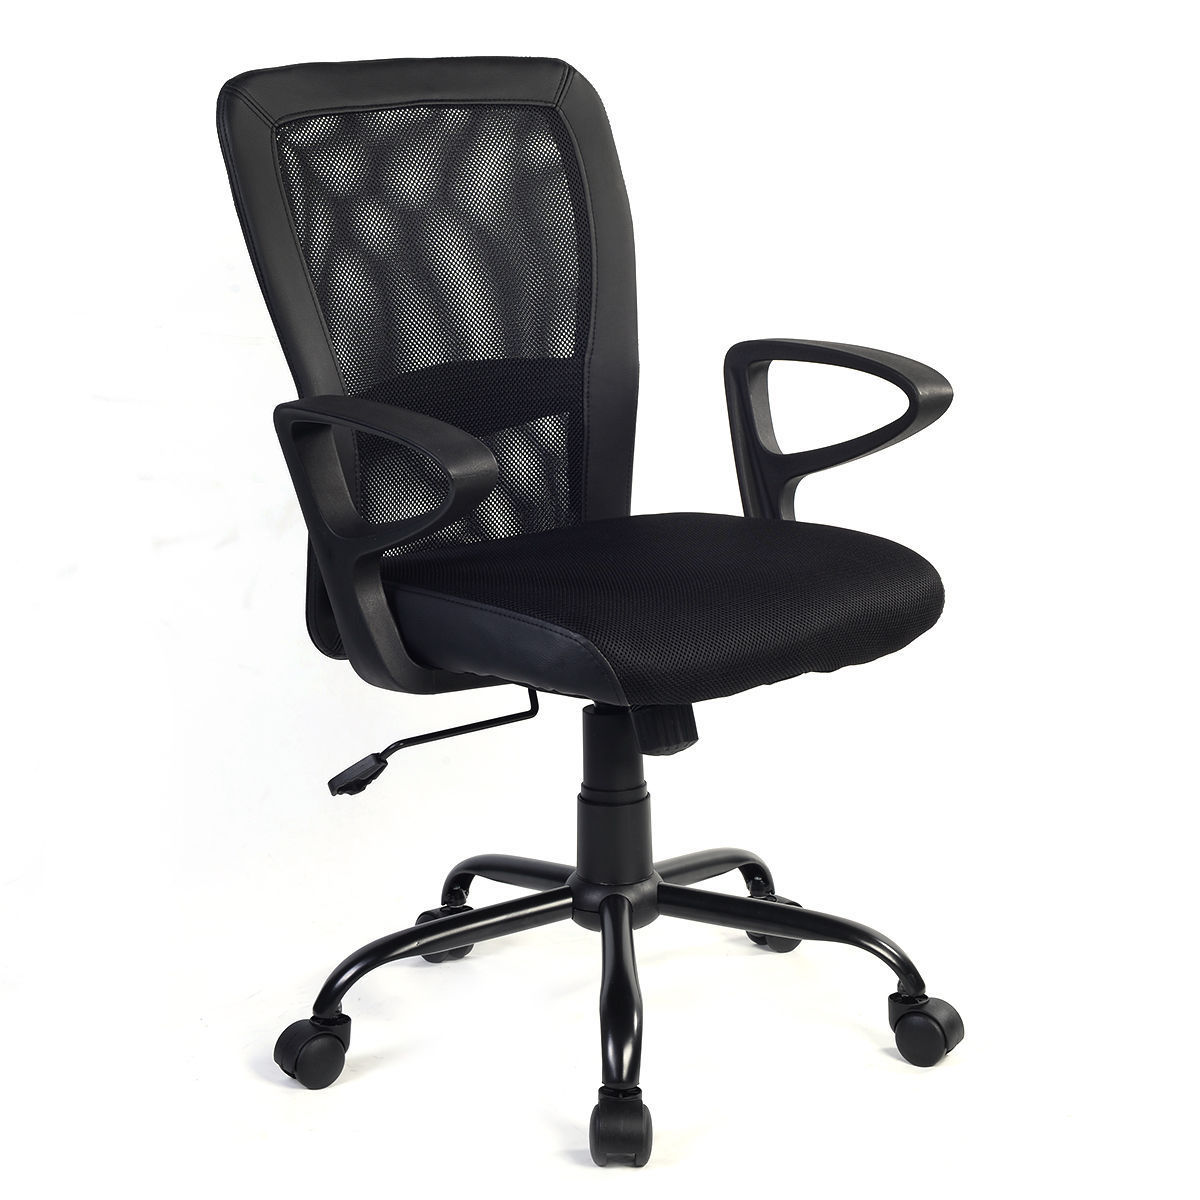 Giantex Modern Ergonomic Mesh Medium Back Office Chair Swivel Executive Computer Desk Task Chairs Office Furniture HW56131 велосипед giant tcx slr 1 2016